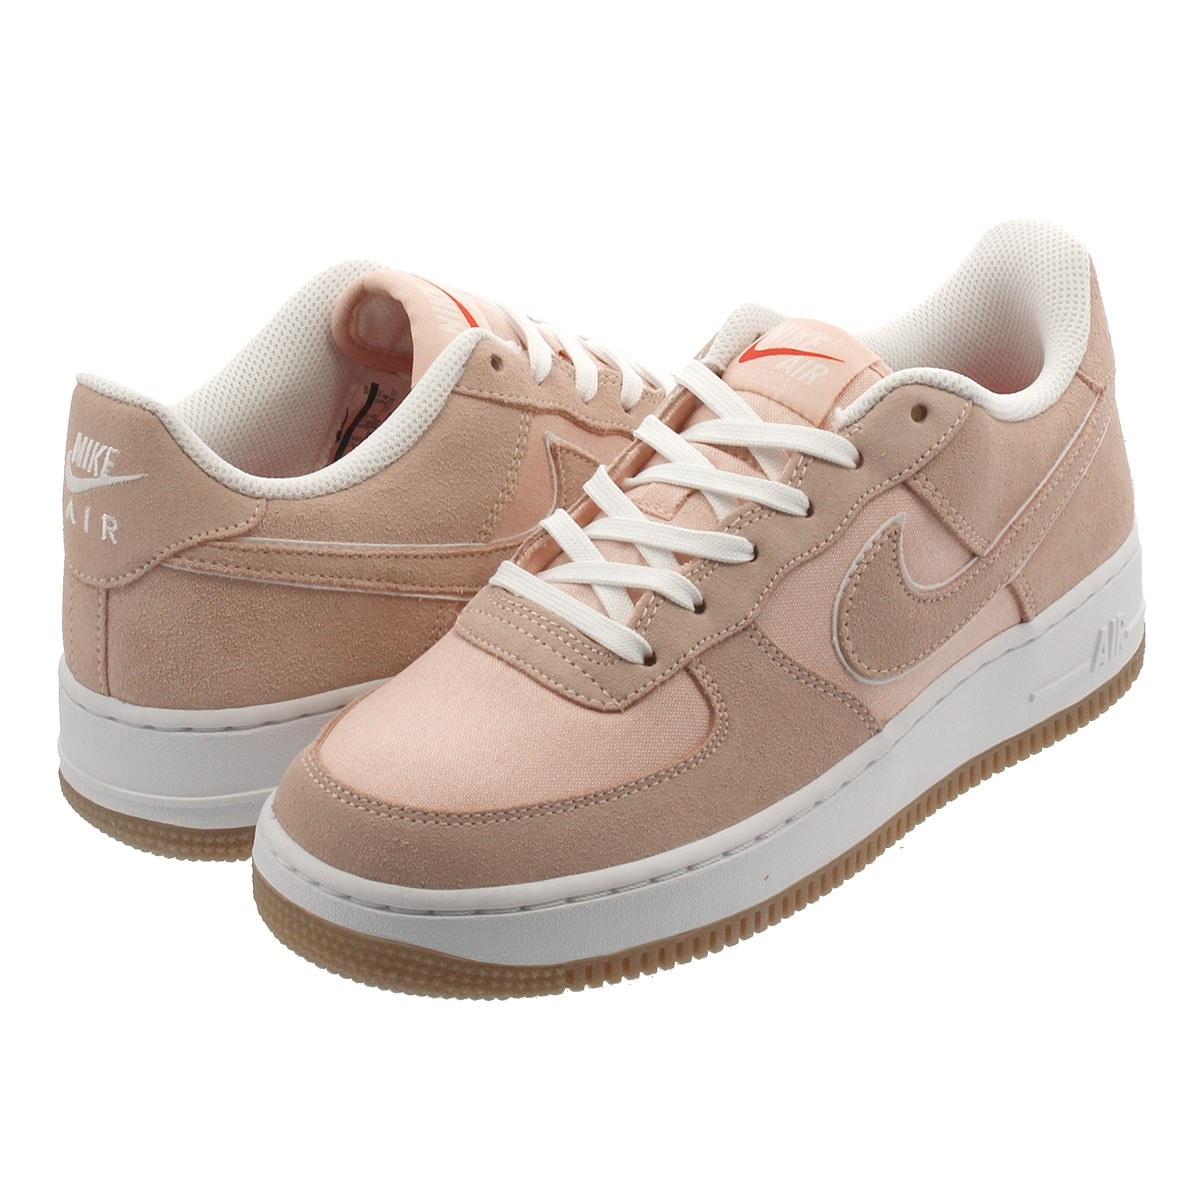 NIKE AIR FORCE 1 GS ナイキ エア フォース 1 GS ARTIC ORANGE/ARTIC ORANGE 596728-800